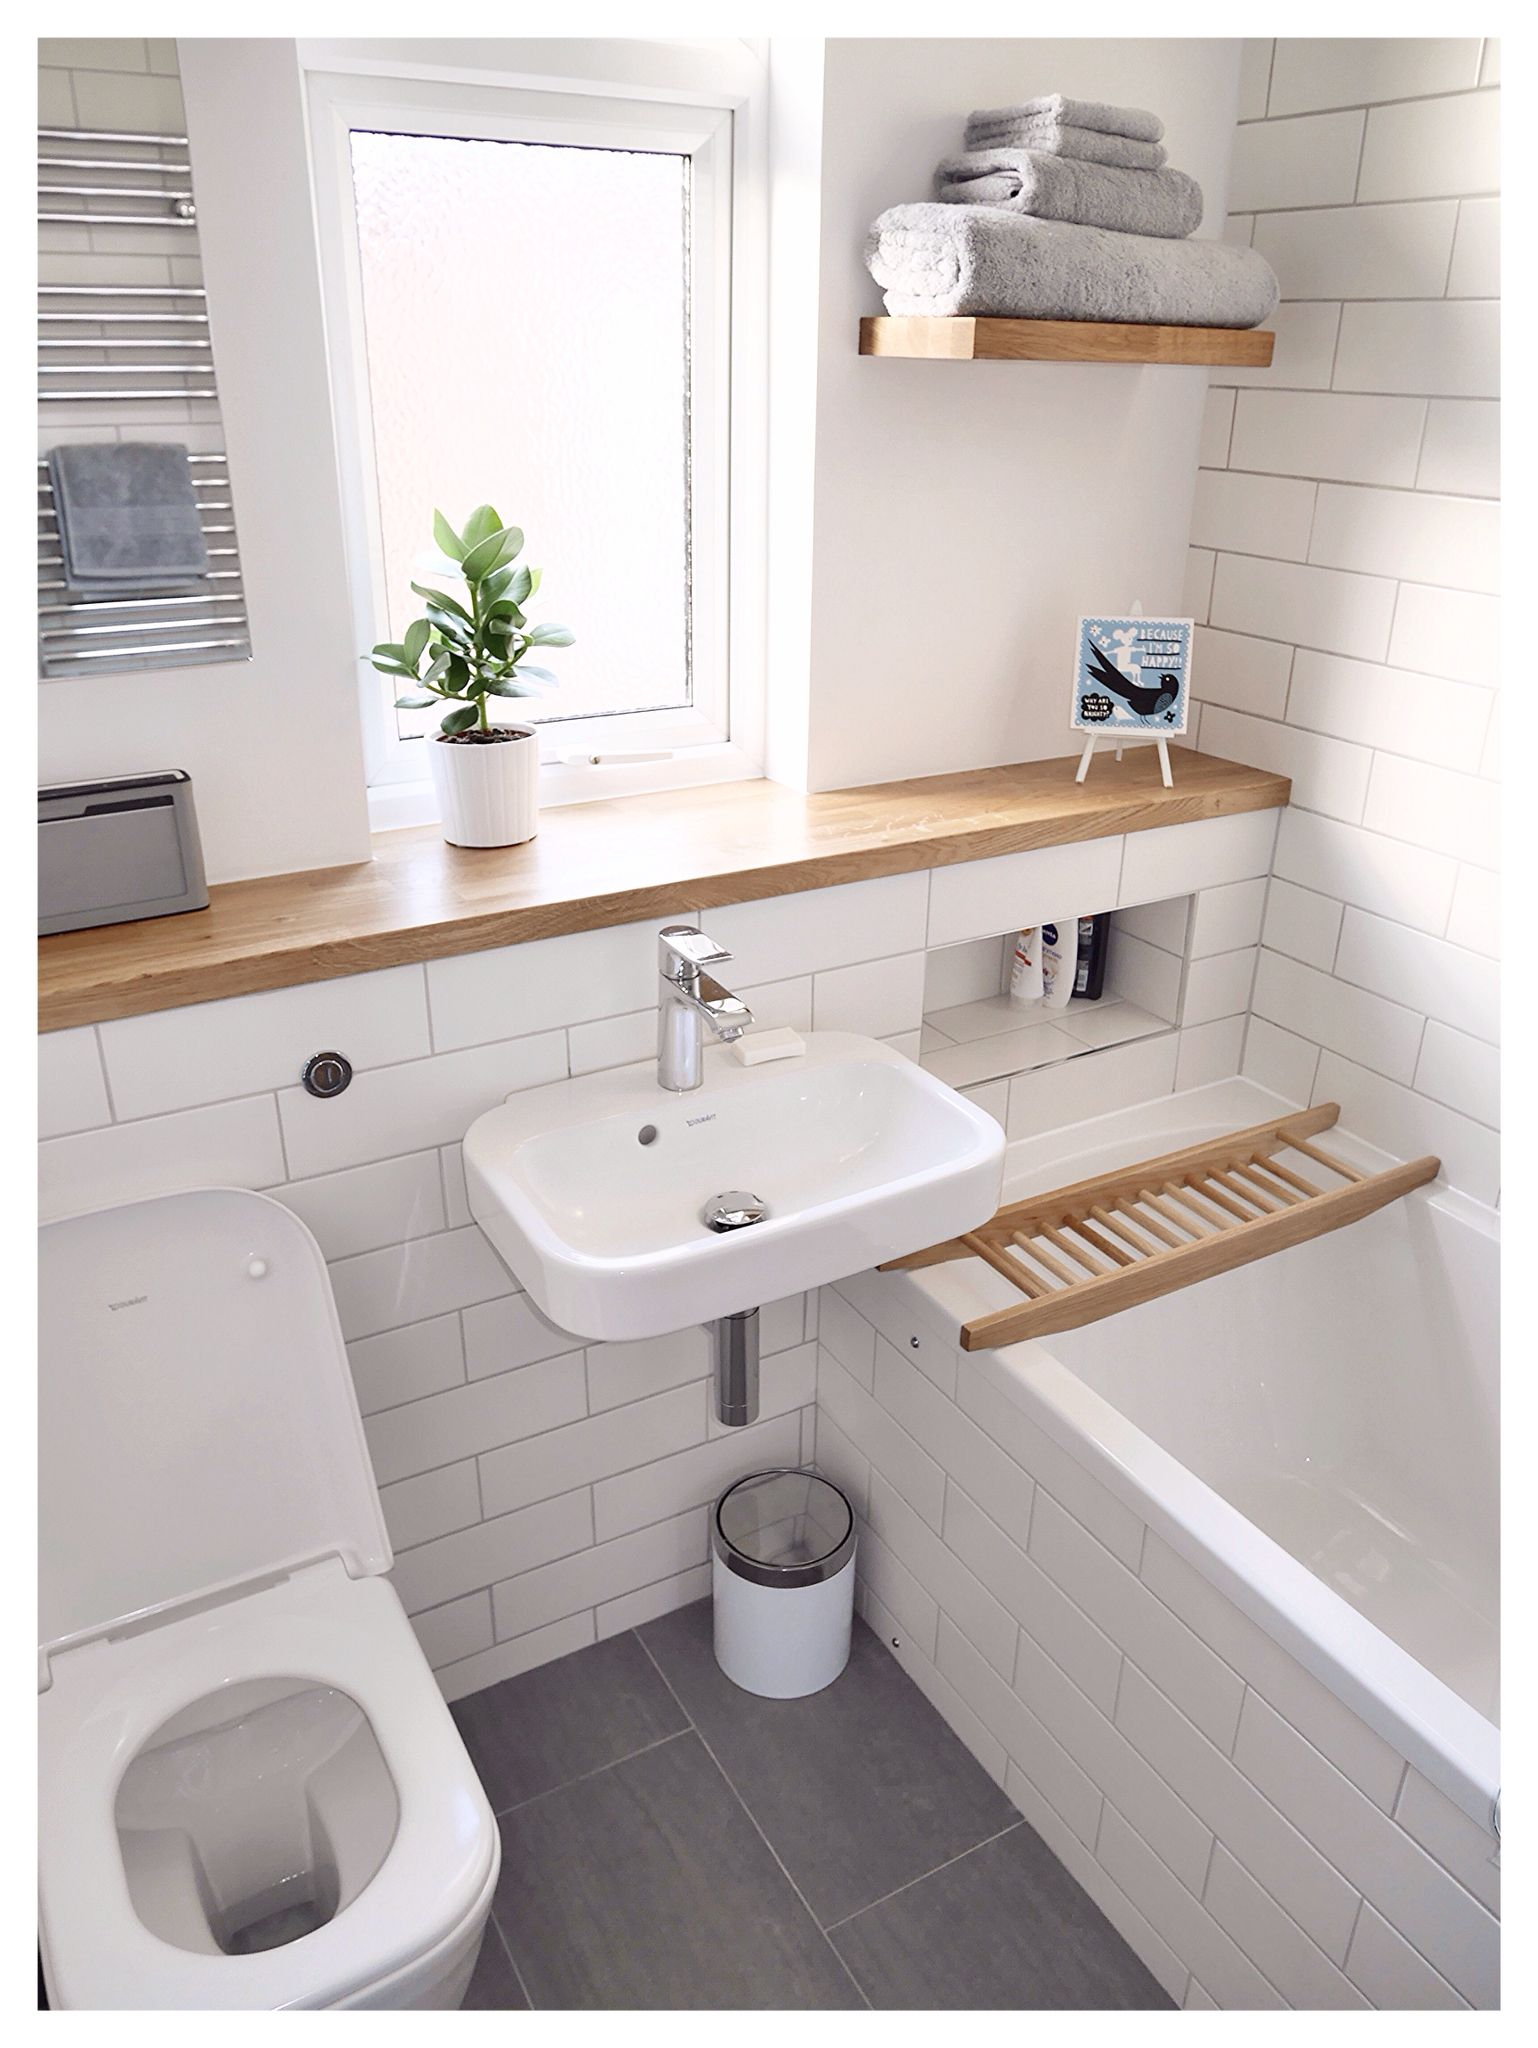 New Bathroom : Duravit Happy D2 Sink, Hansgrohe Metris taps, Rob ...